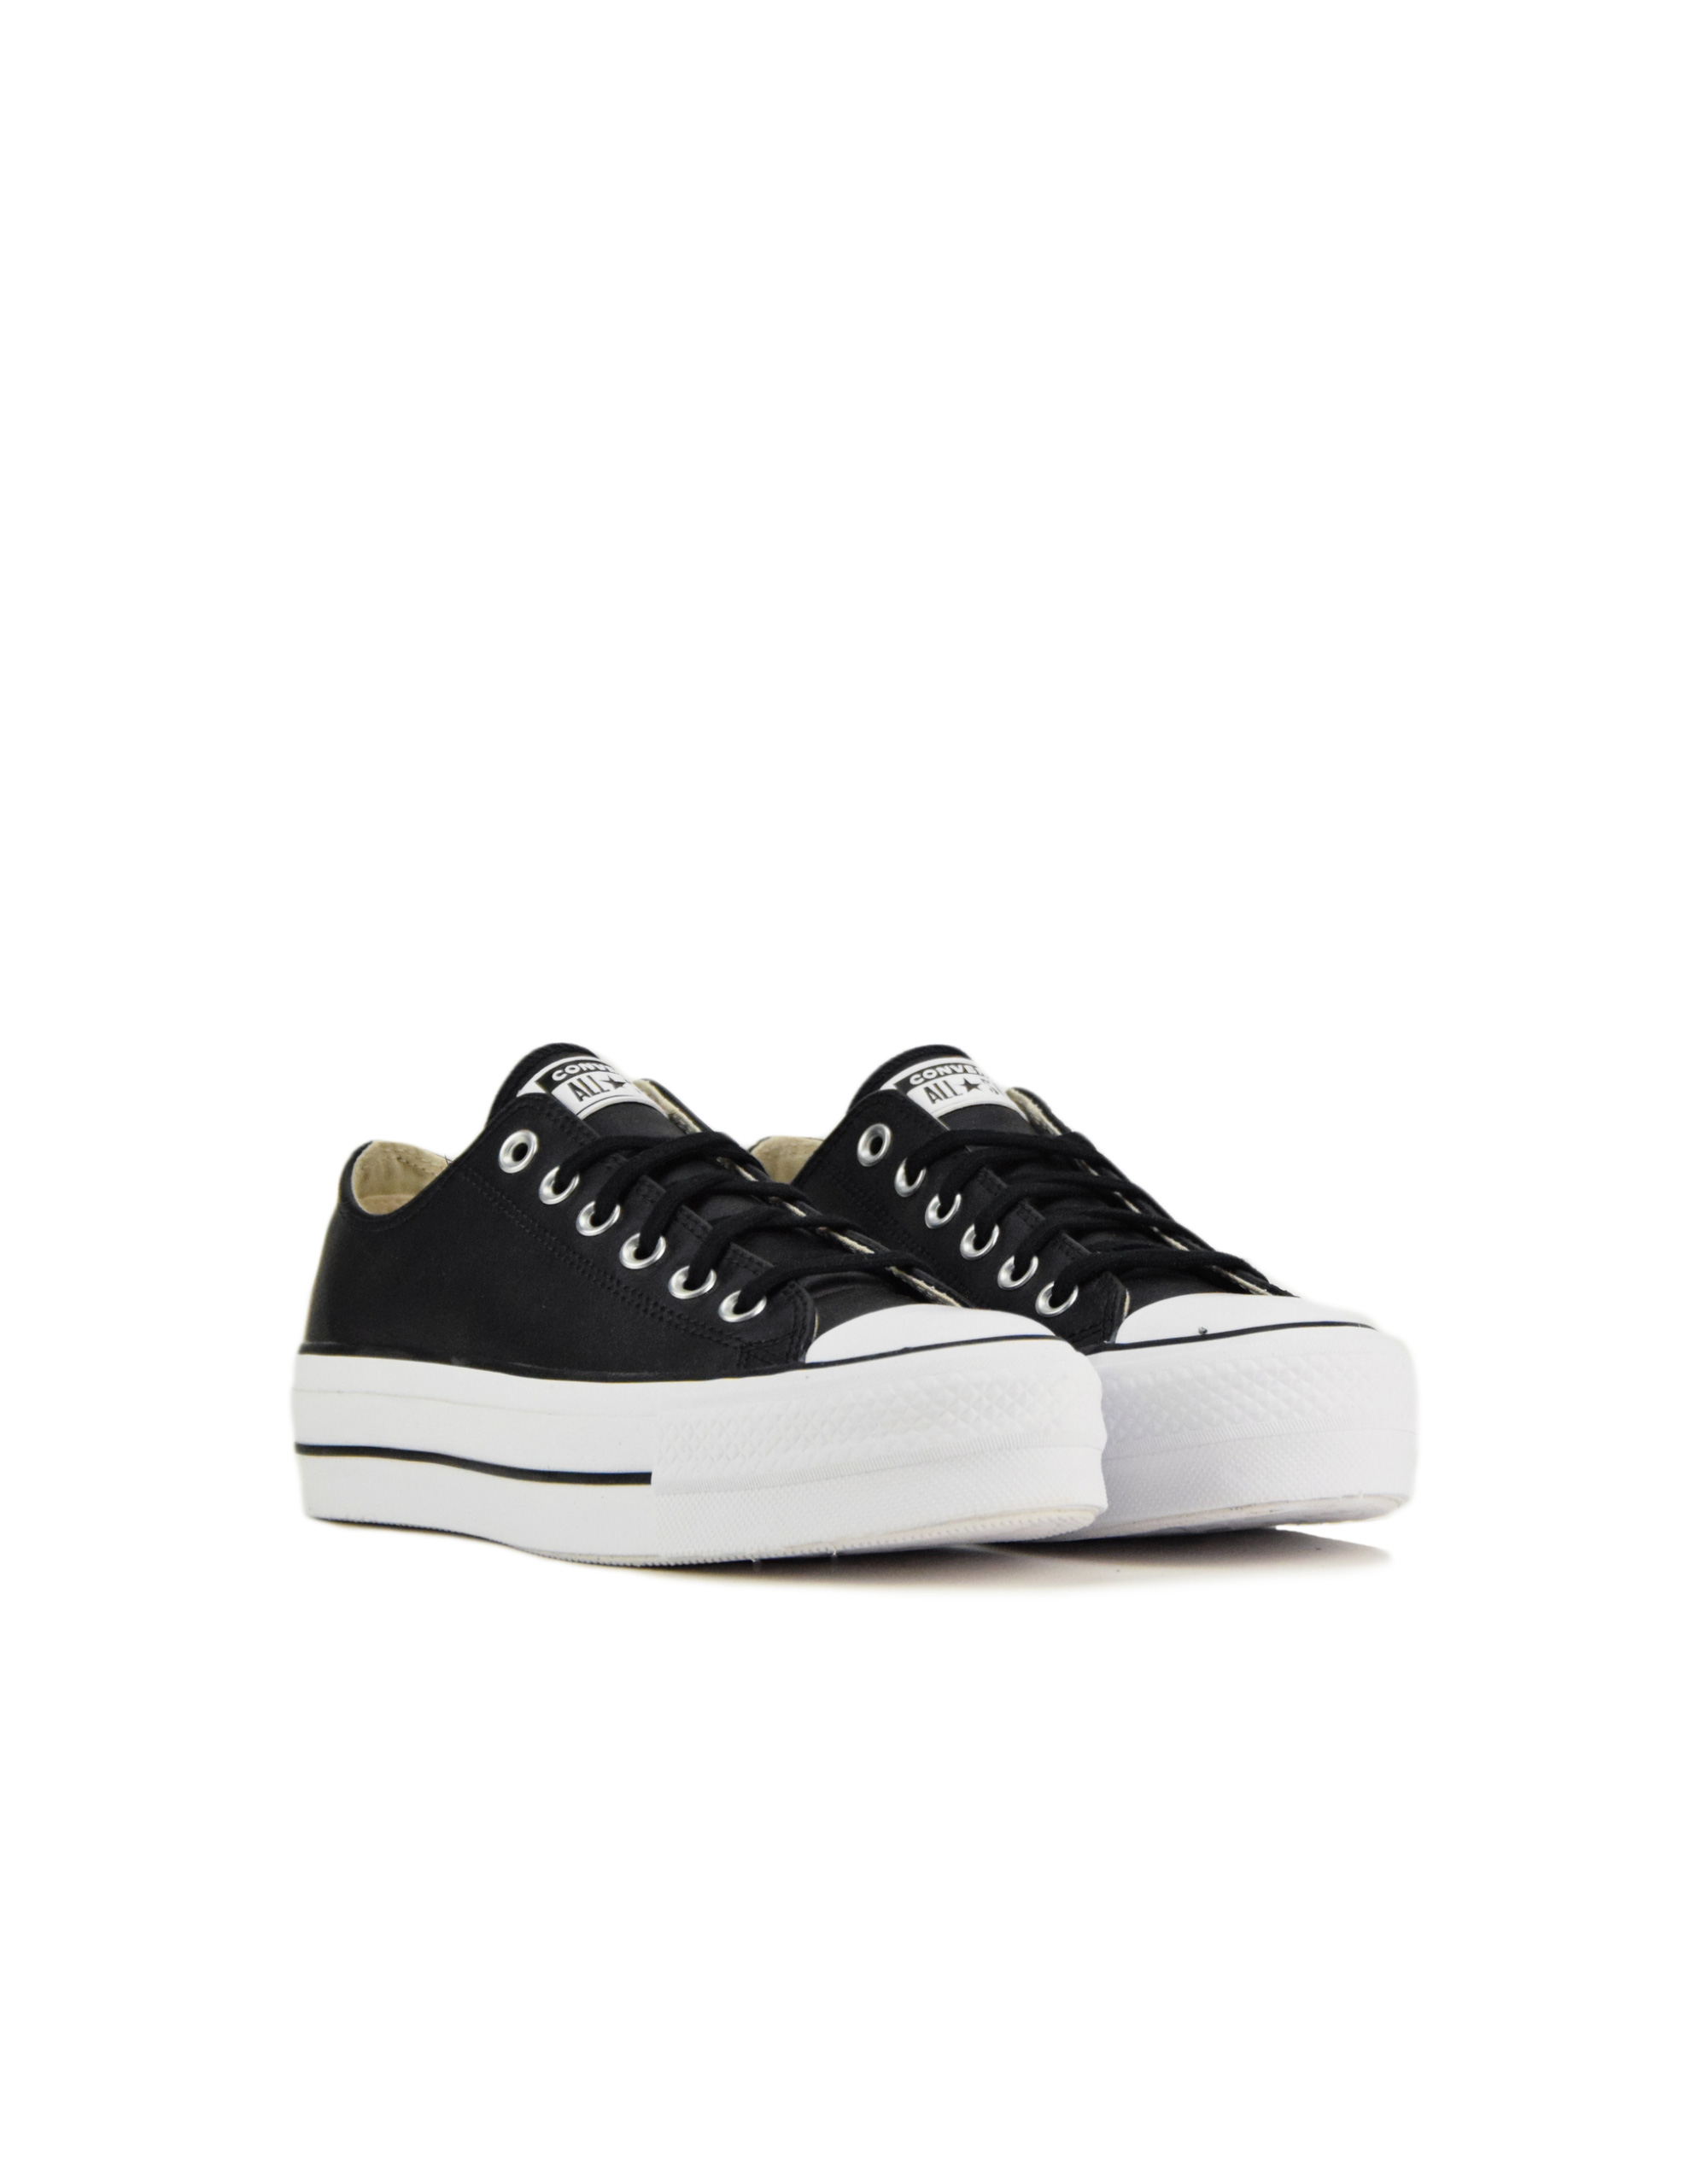 Converse Chuck Taylor All Star Lift Clean OX (561681) Black/White